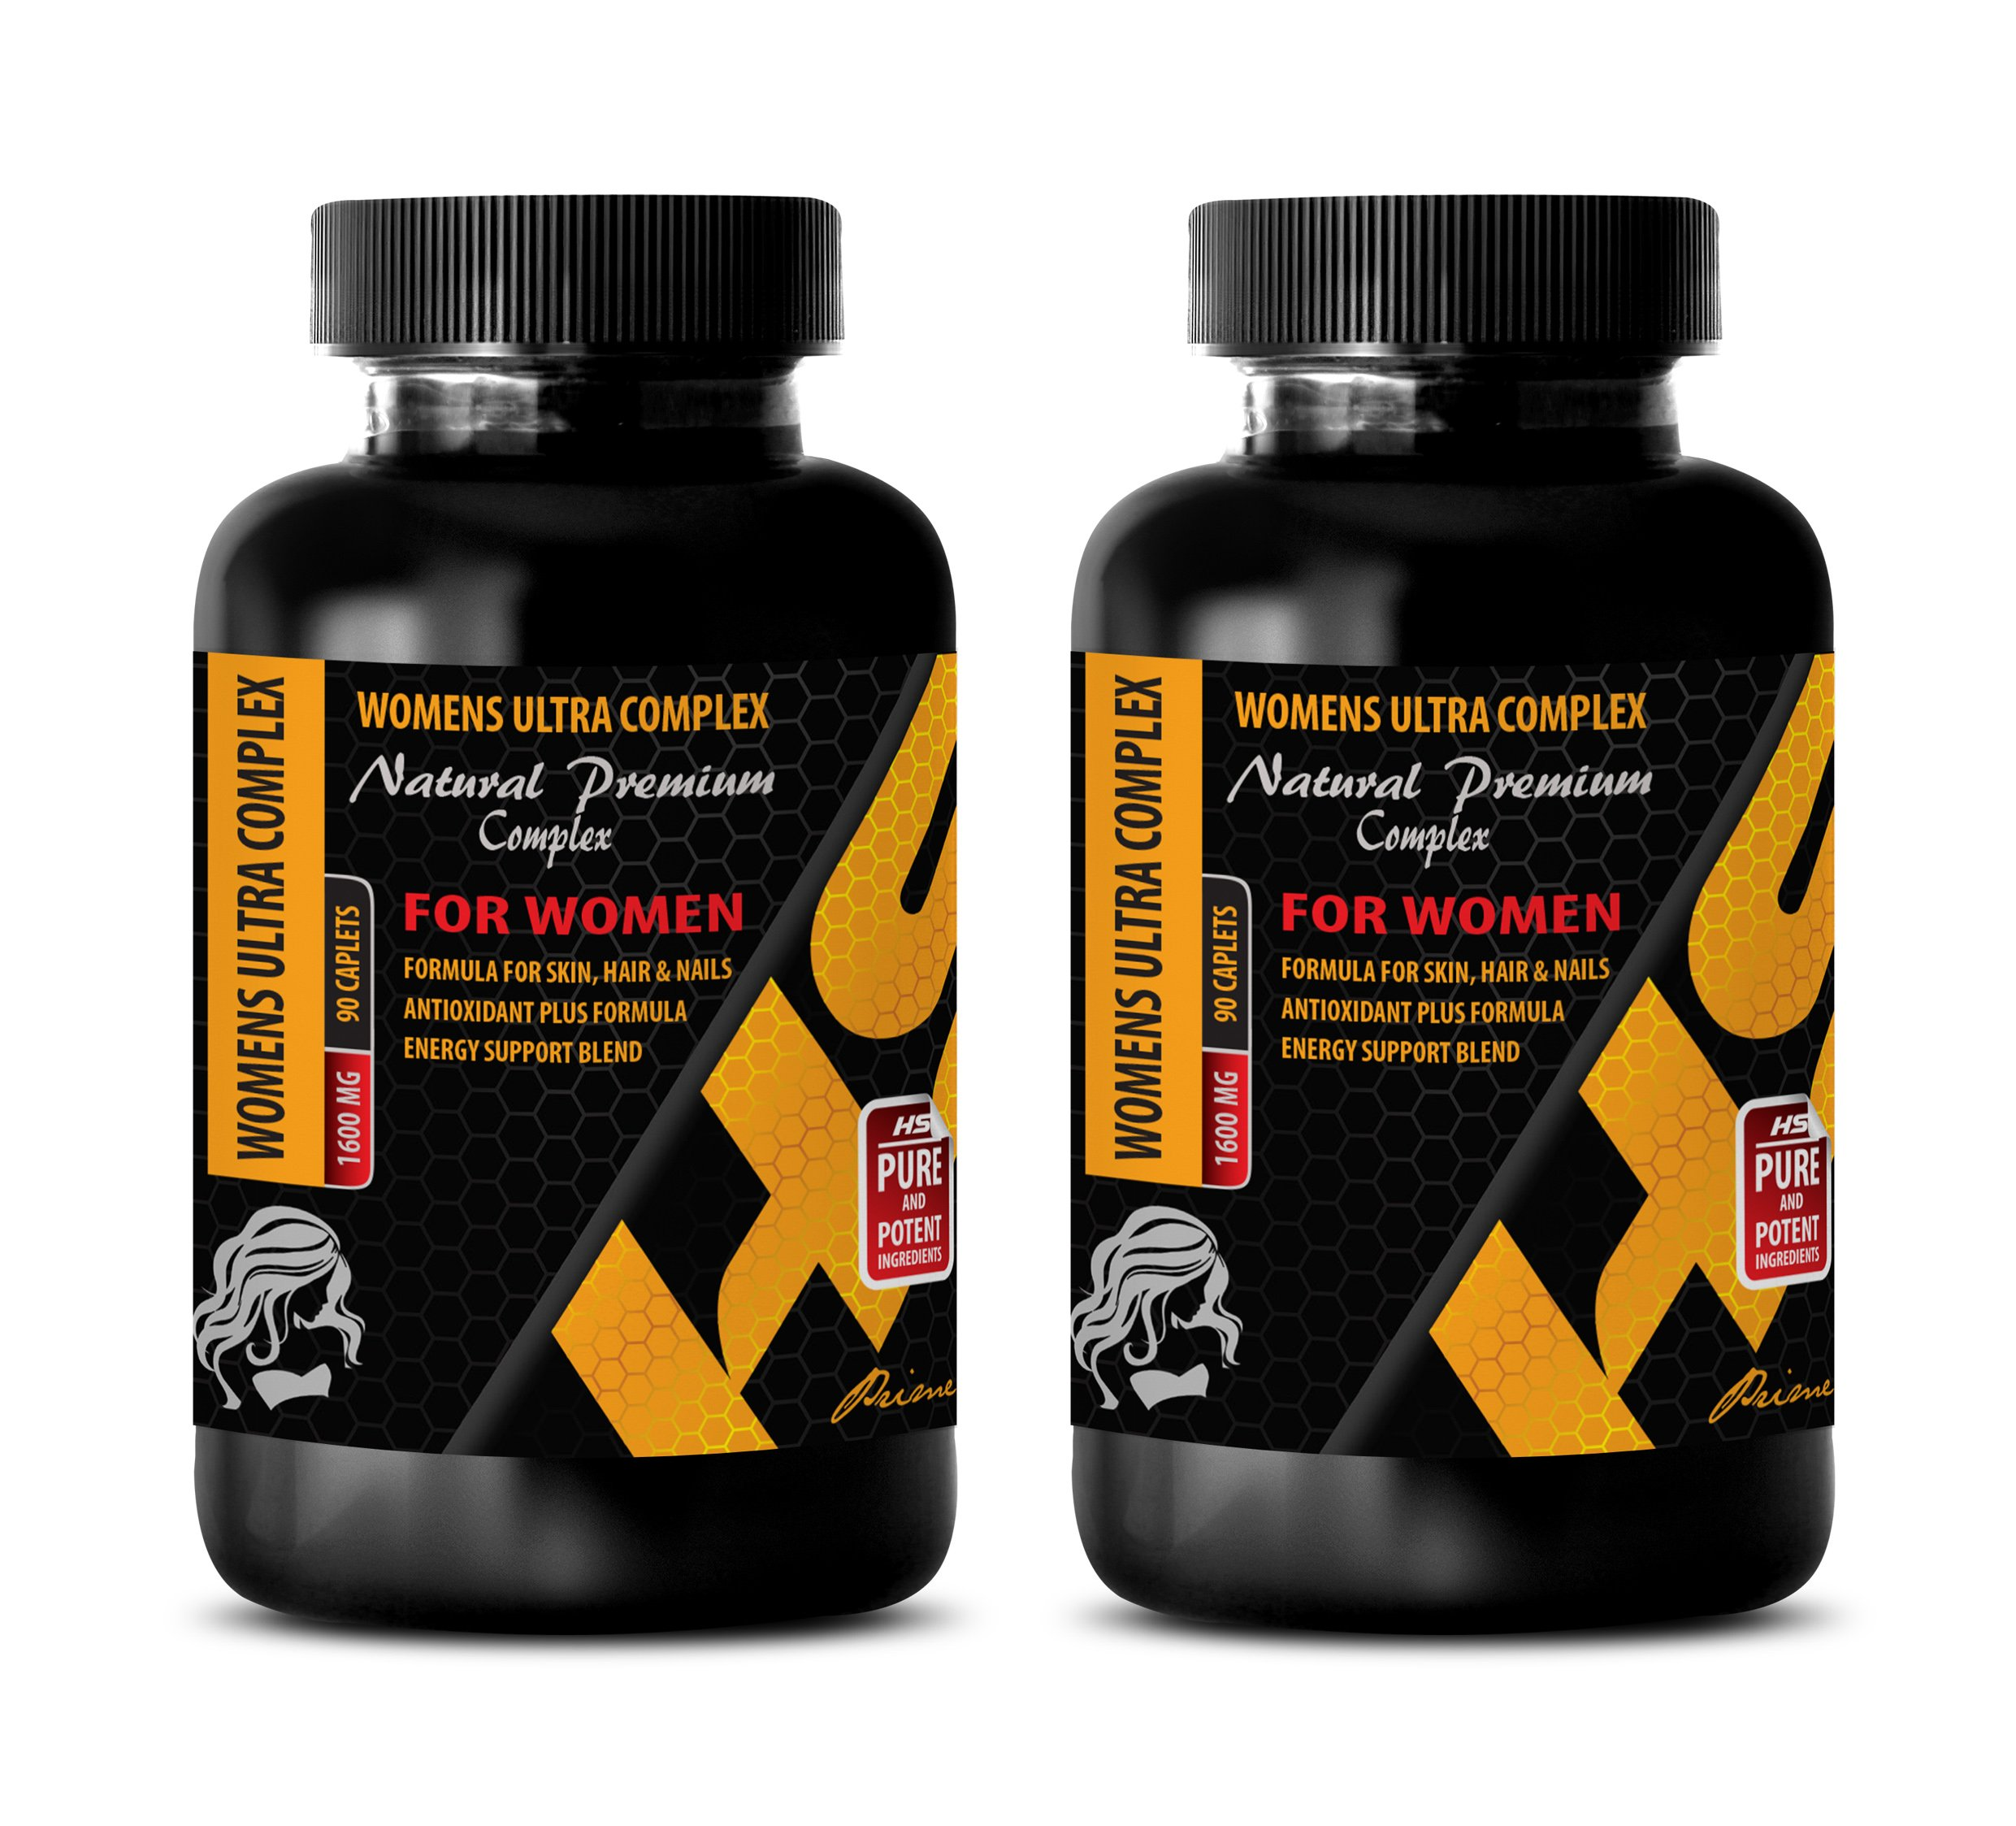 menopause supplements weight control - WOMENS ULTRA COMPLEX 1600 MG - NATURAL PREMIUM - green tea extract with vitamin b - 2 Bottles 180 Caplets